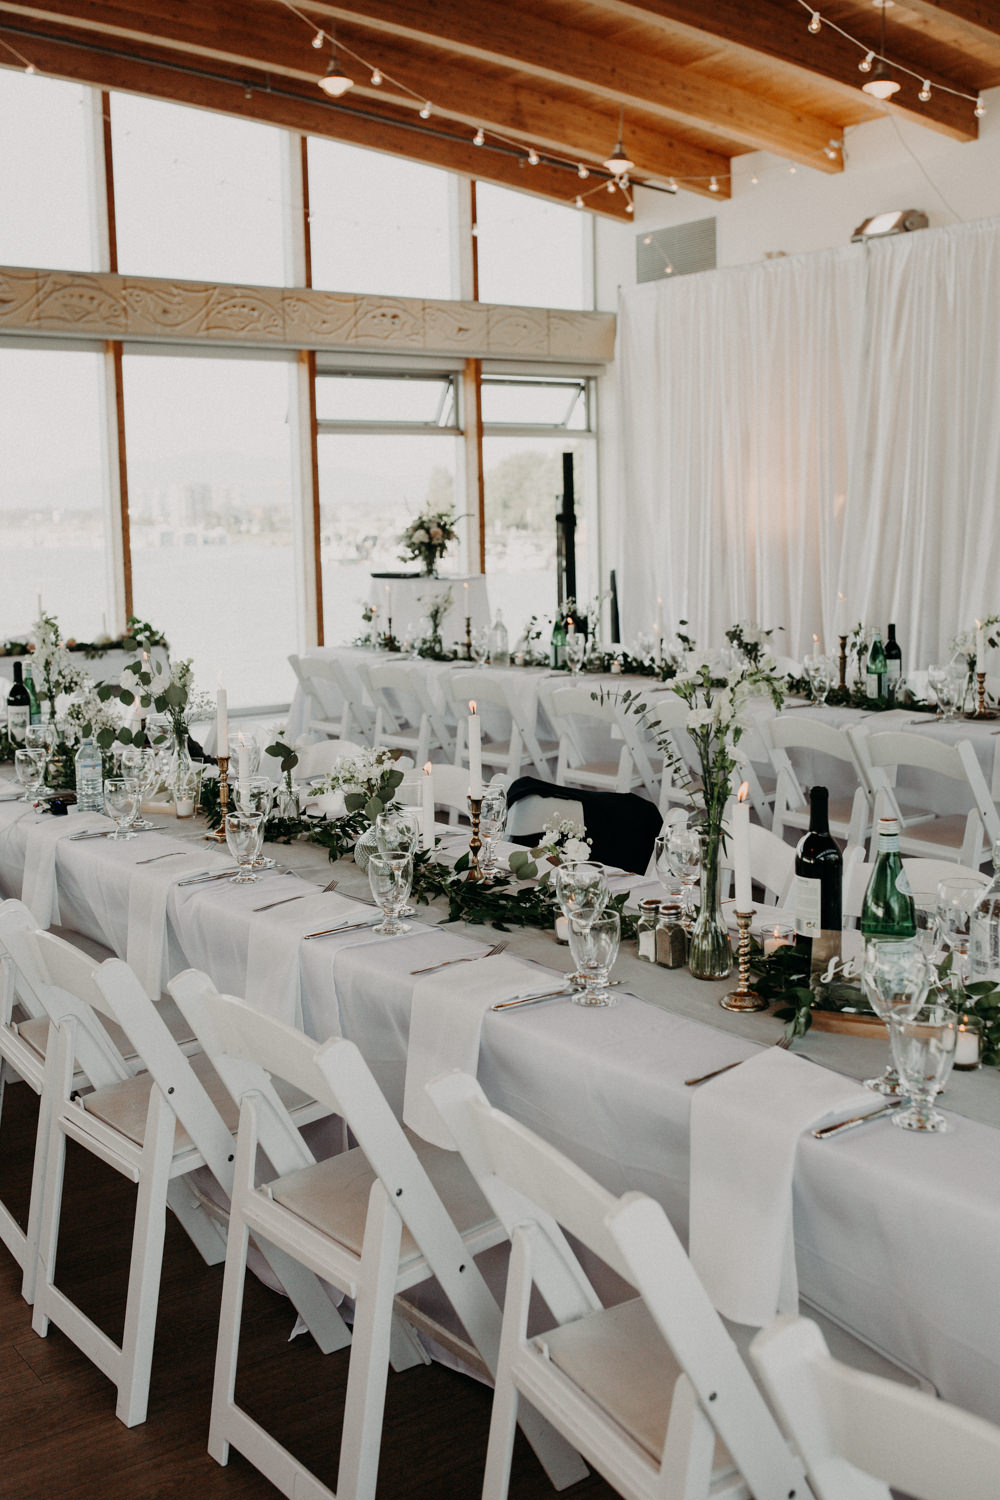 UBC-Boathouse-Wedding-74.jpg